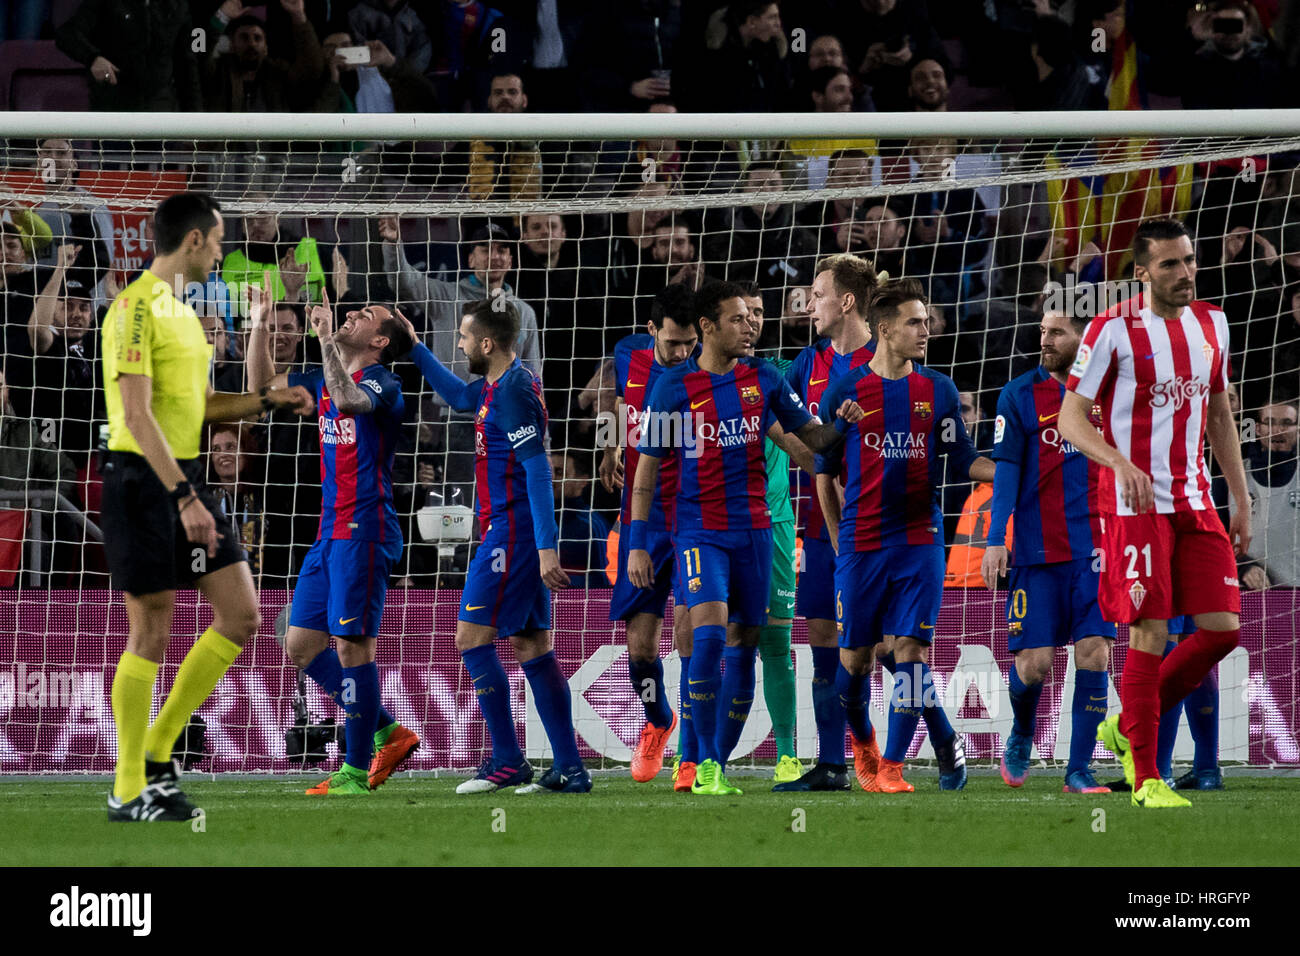 Camp Not Stadium, Barcelona, Spain. 1st March, 2017. Paco Alcacer celebrates the goal at Camp Nou Stadium, Barcelona, - Stock Image